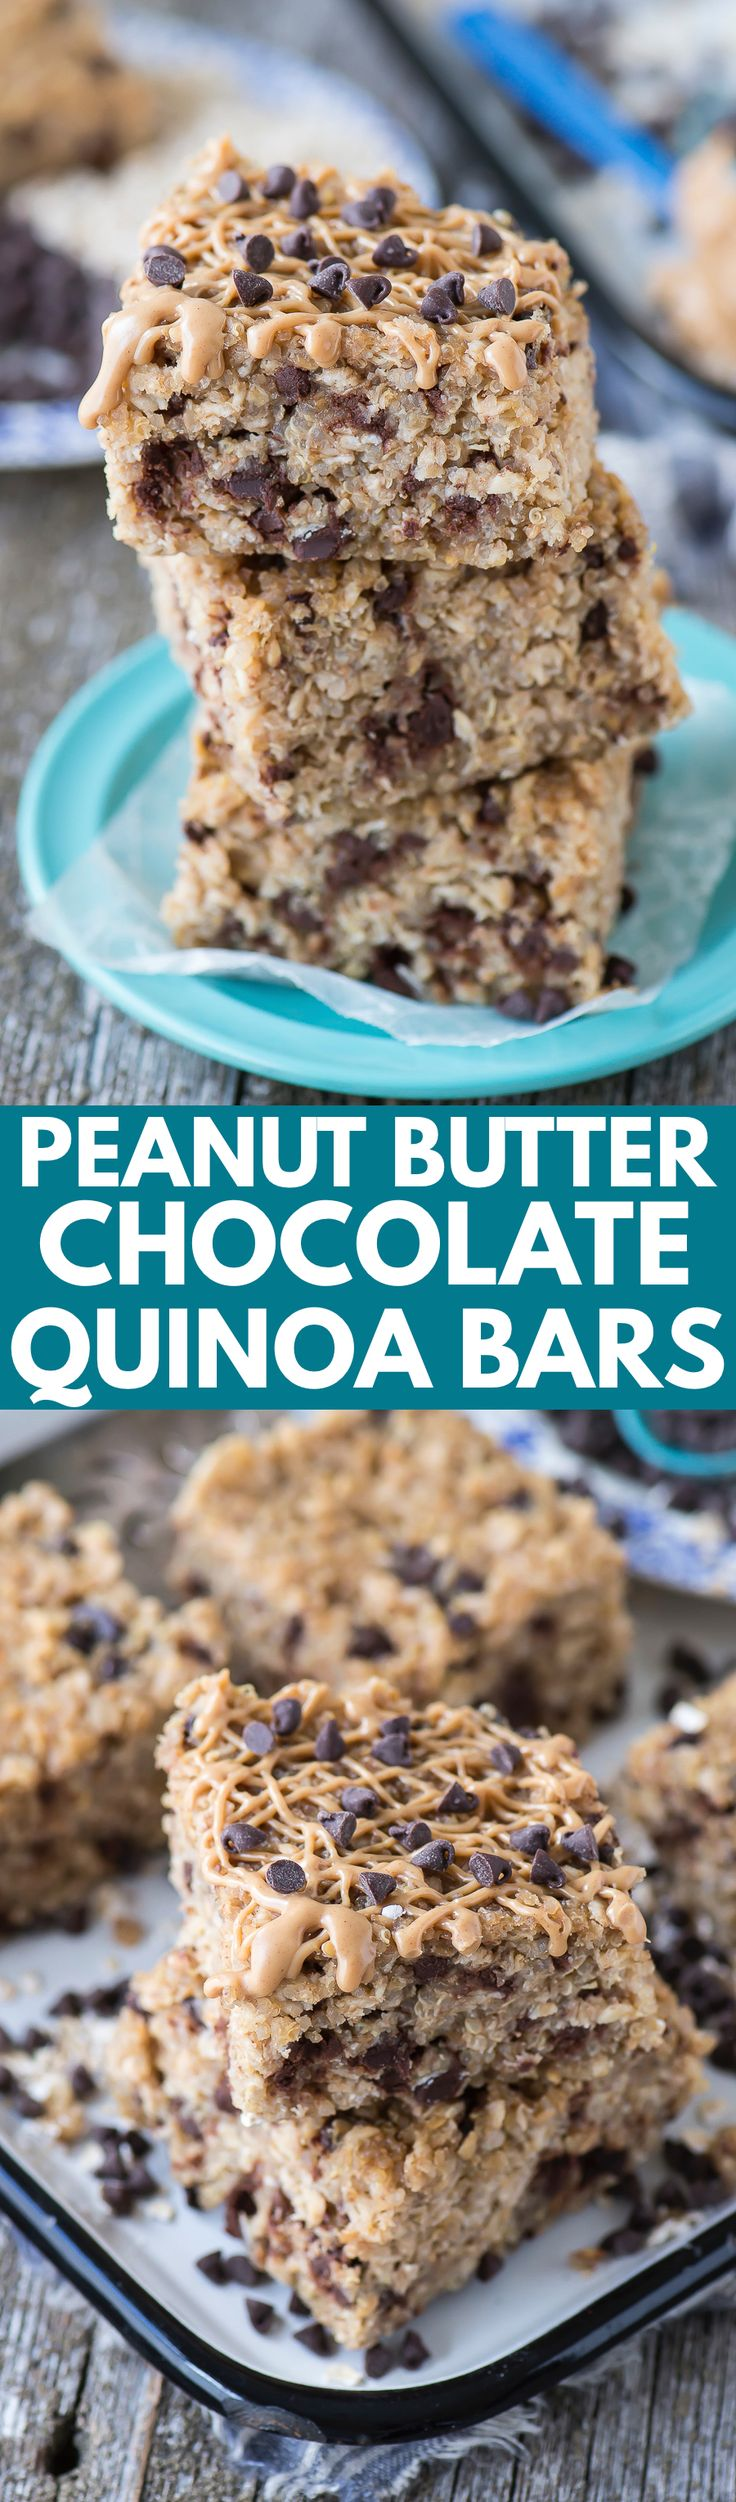 Healthy peanut butter chocolate chip quinoa granola bars! 7 ingredients and 30 minutes to bake! The best homemade granola bar!